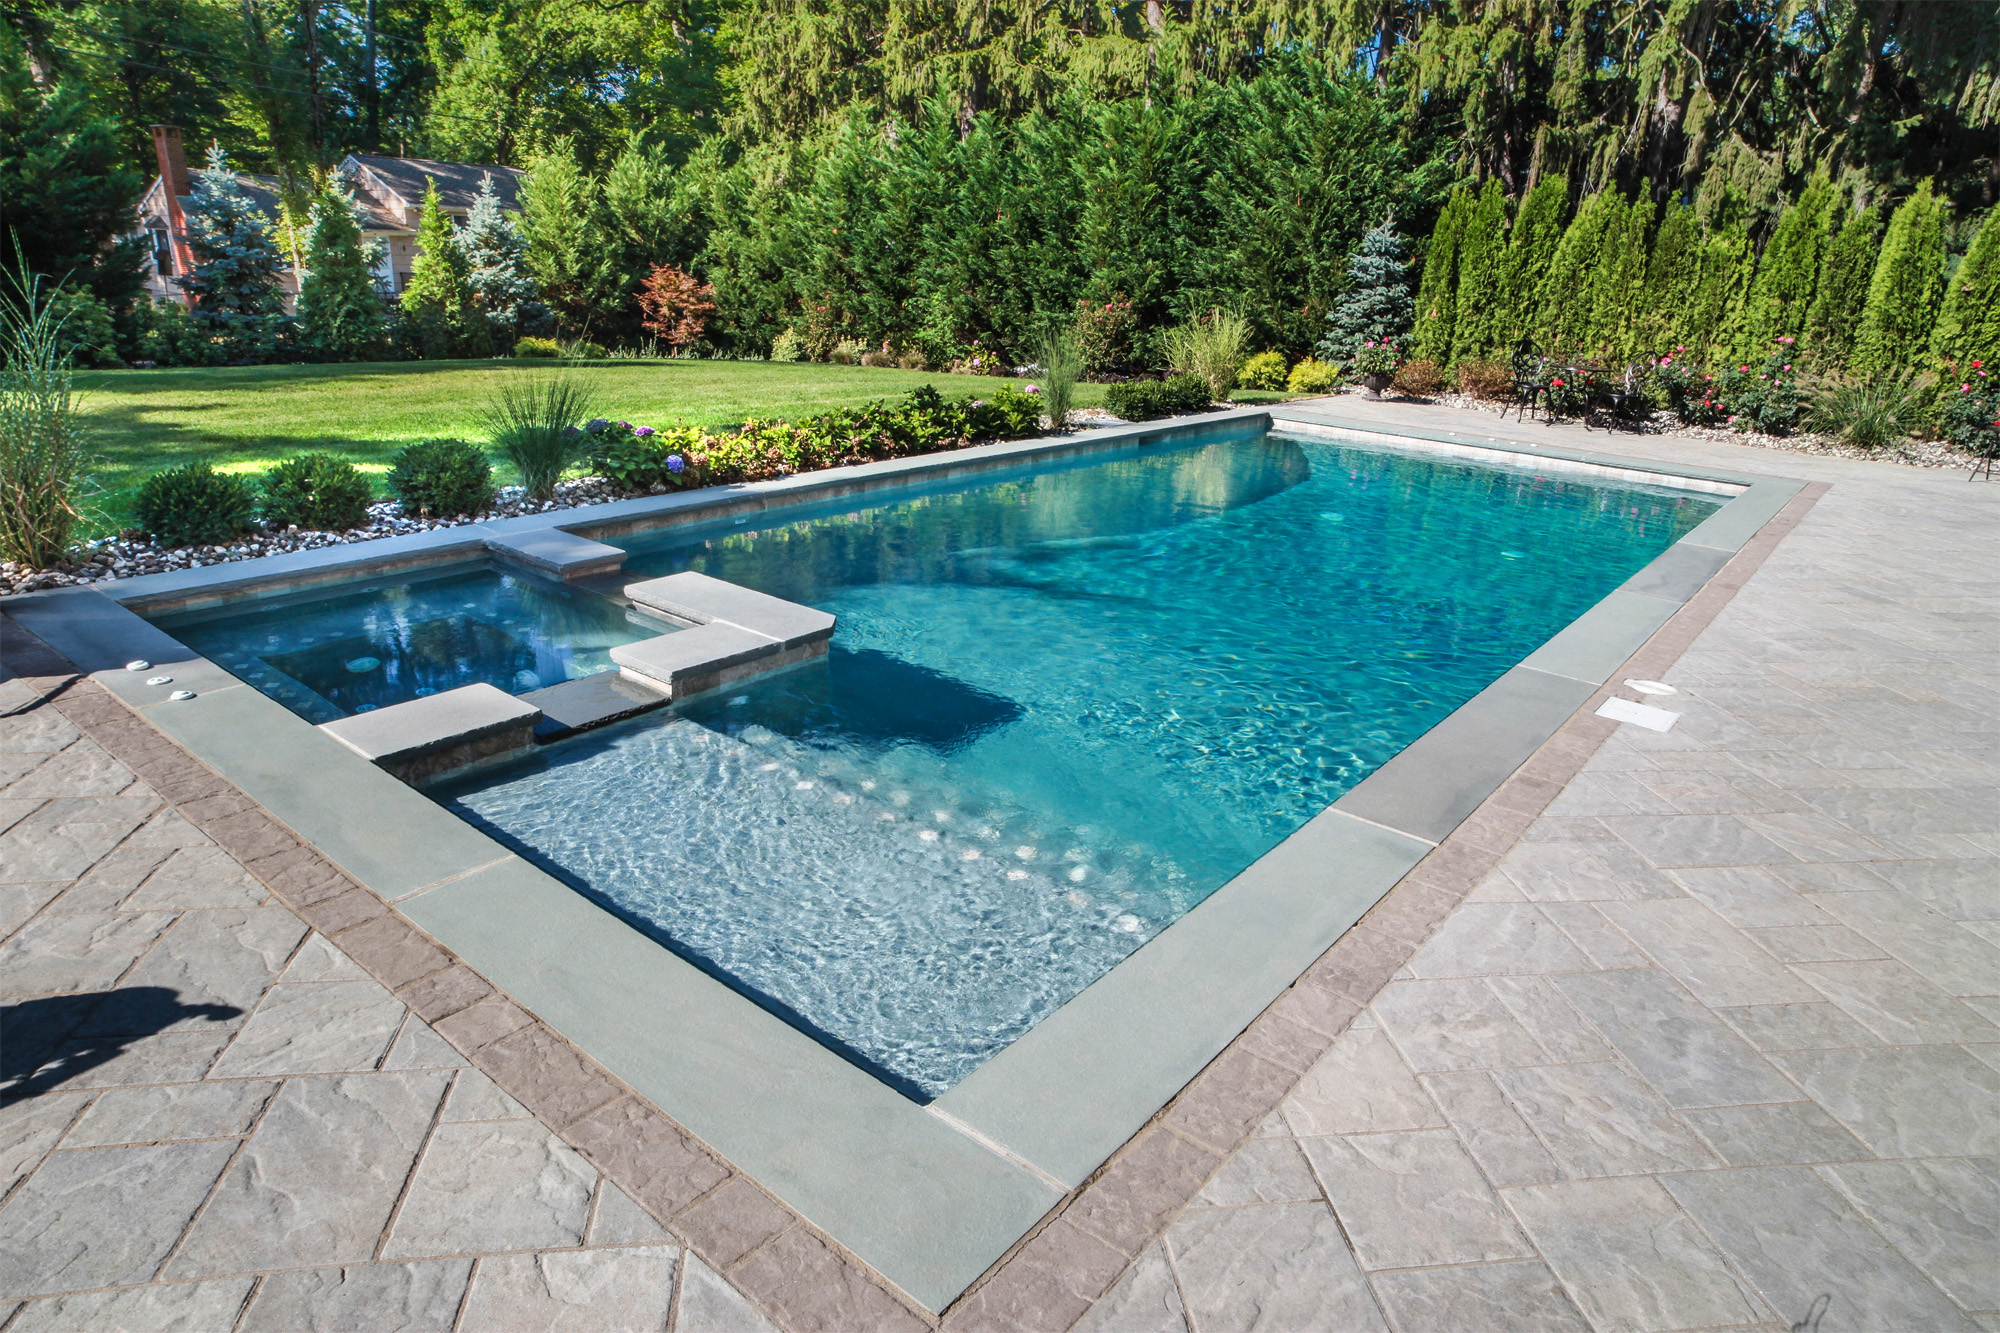 Emejing rectangular swimming pool designs photos for Swimming pool layouts and designs